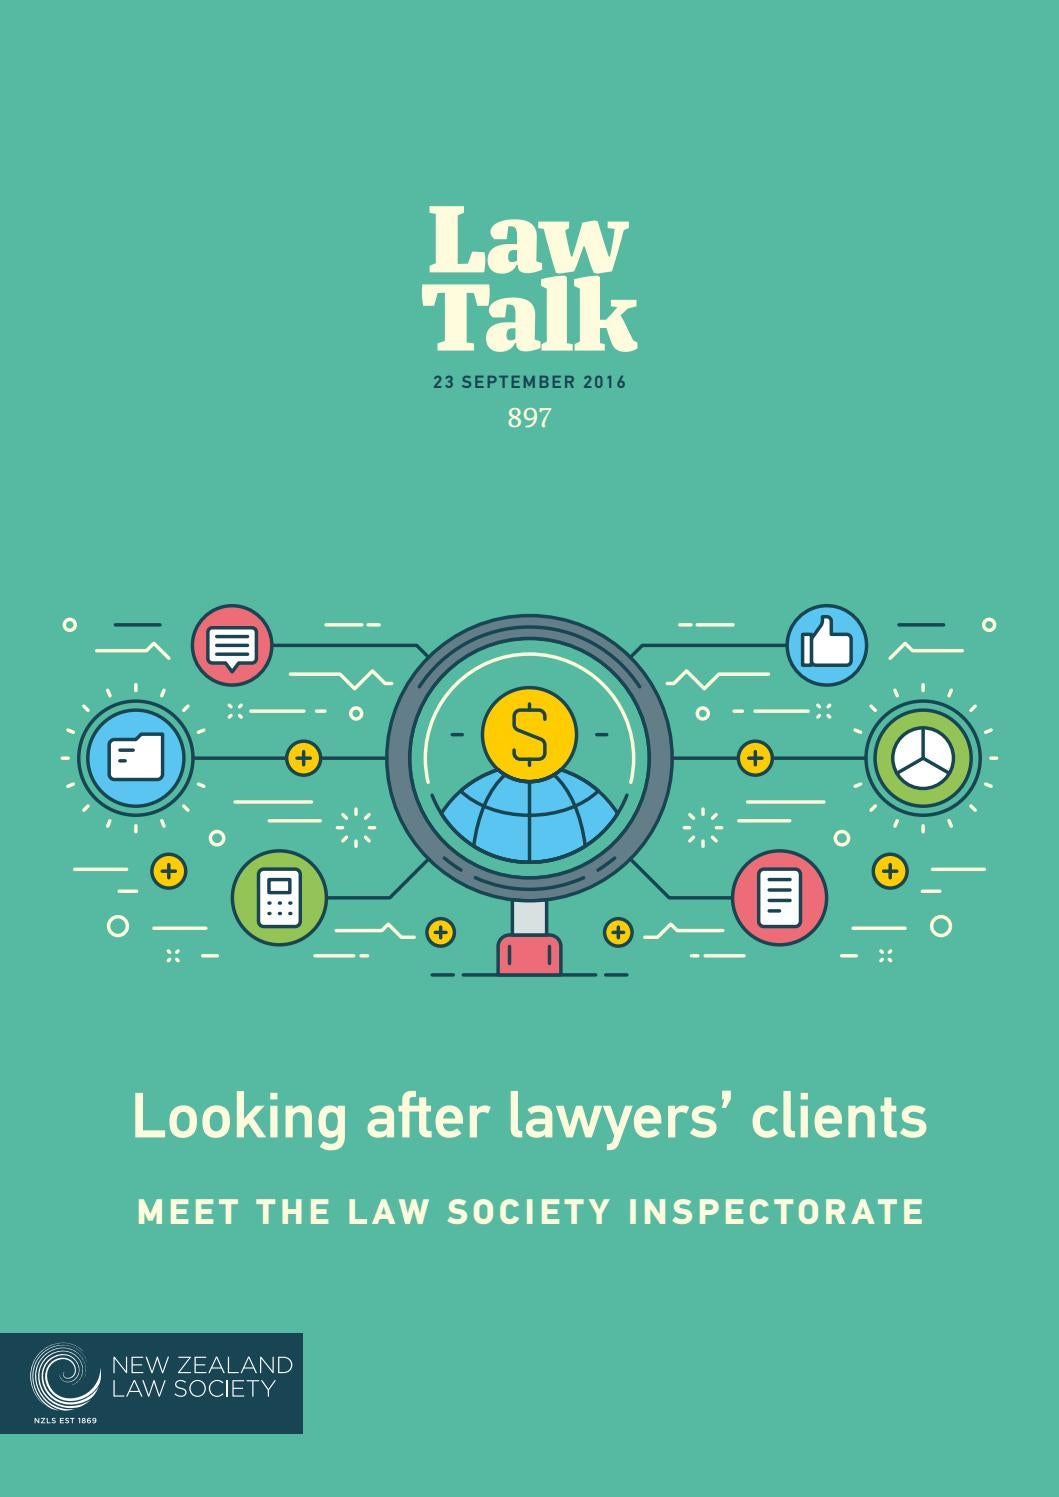 Lawtalk 897 by nz law society issuu solutioingenieria Image collections